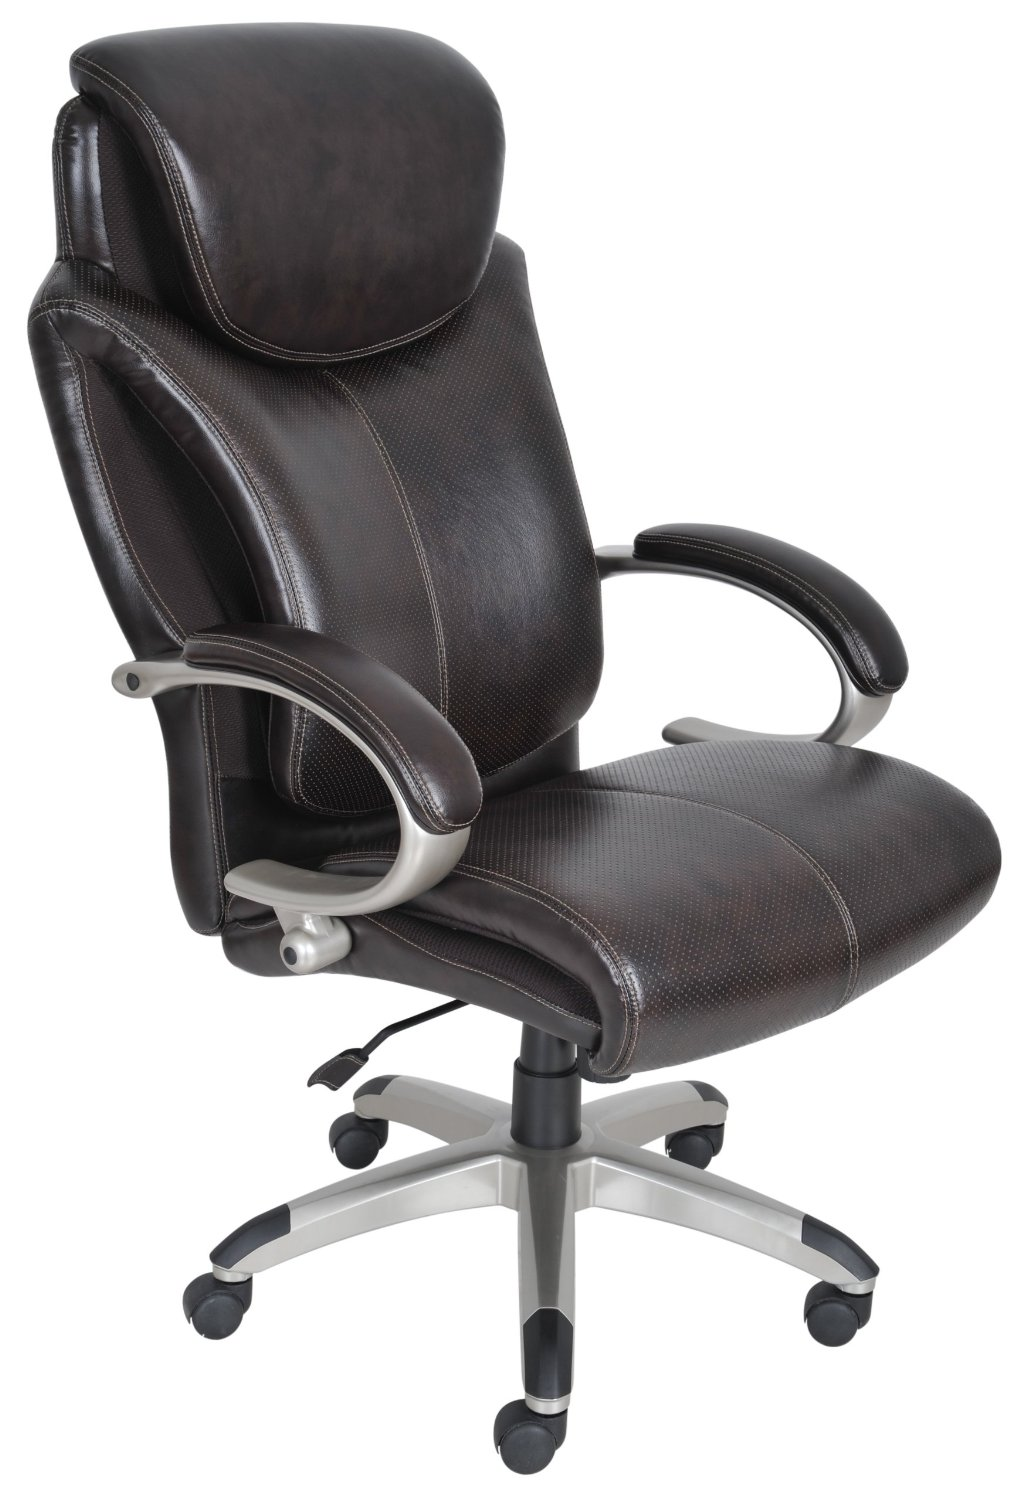 Office chair under 300 - This Is Another Best Office Chair Under 300 That Is Recommended And It Is Well Known For Its Quality Style And Comfort It Is Featured With Air Kinetic